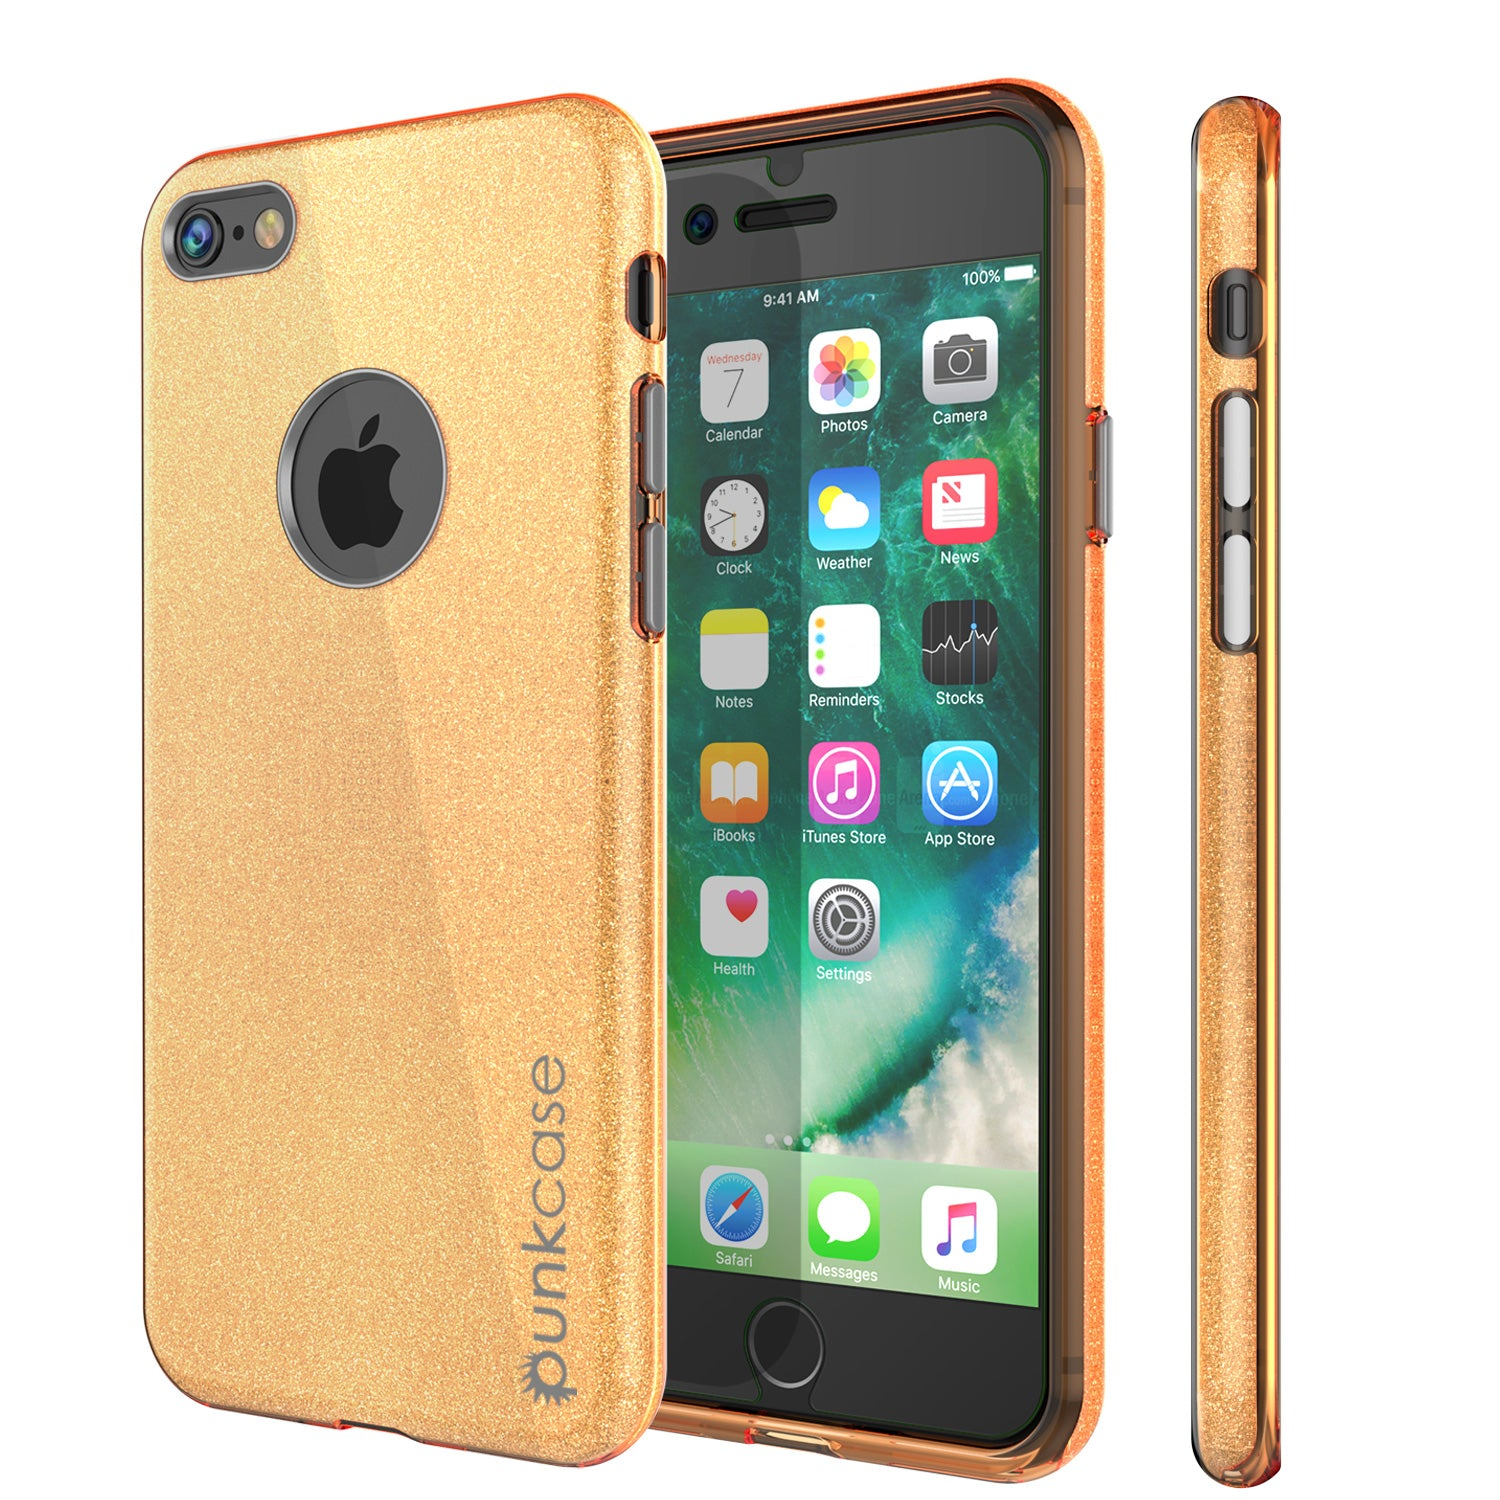 brand new d8796 68eda iPhone 8 Case, Punkcase Galactic 2.0 Series Ultra Slim Protective Armor TPU  Cover [Gold]